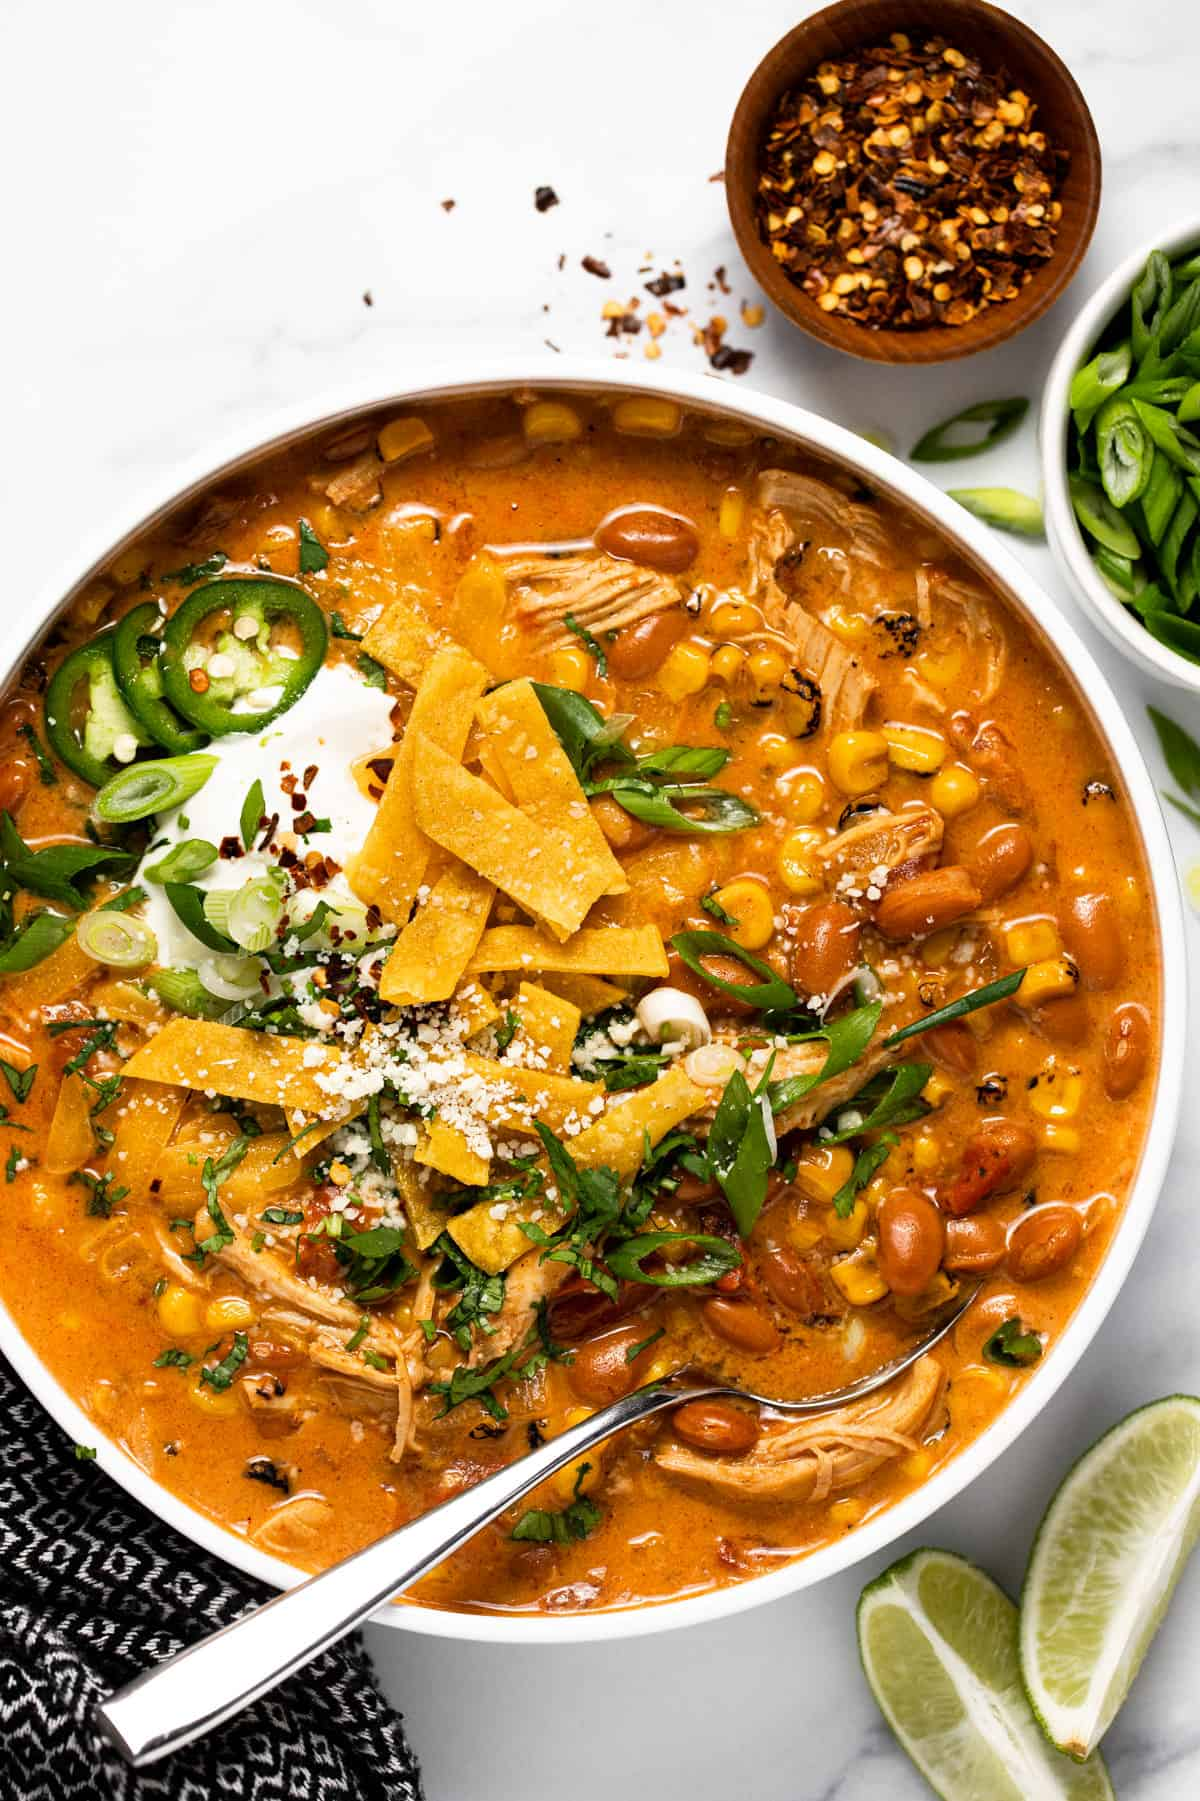 Large white bowl filled with creamy southwest chicken chili